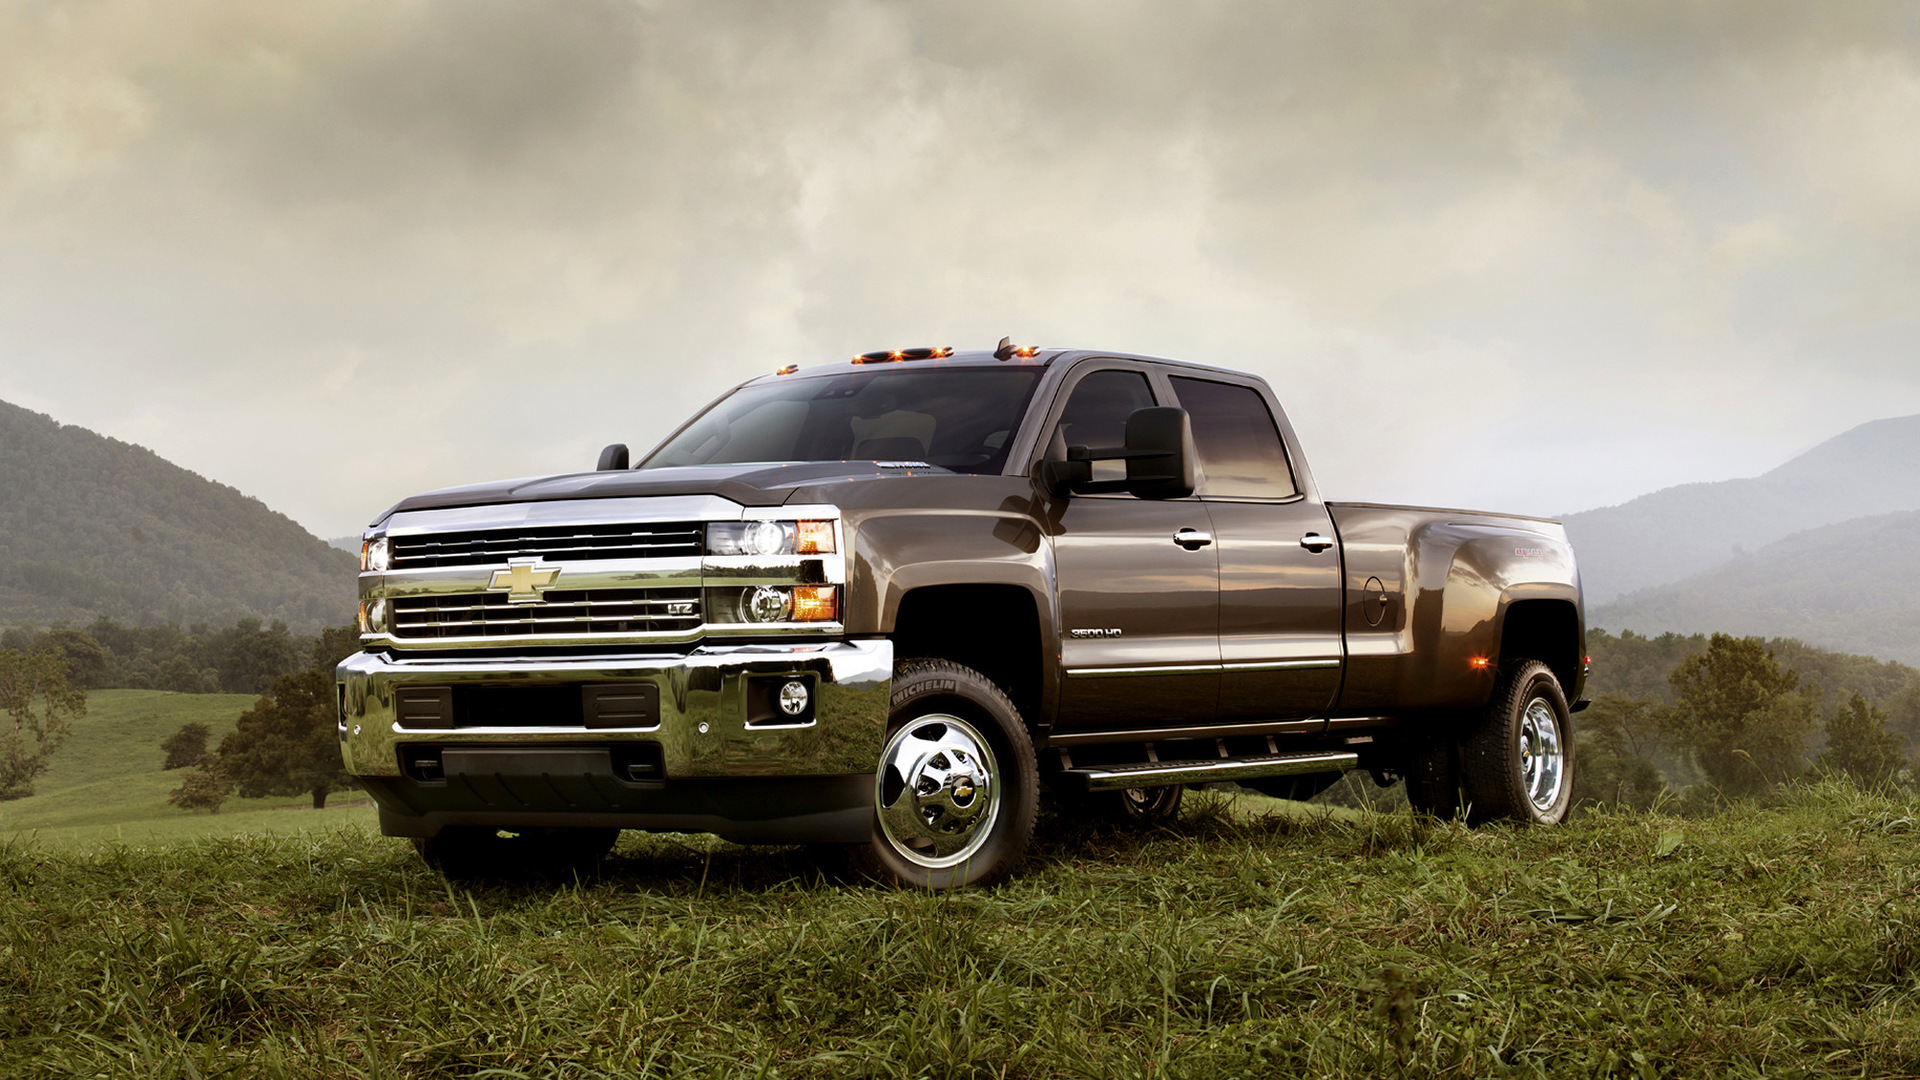 2015 Chevrolet Silverado 3500 HD LTZ Crew Cab - Wallpapers ...